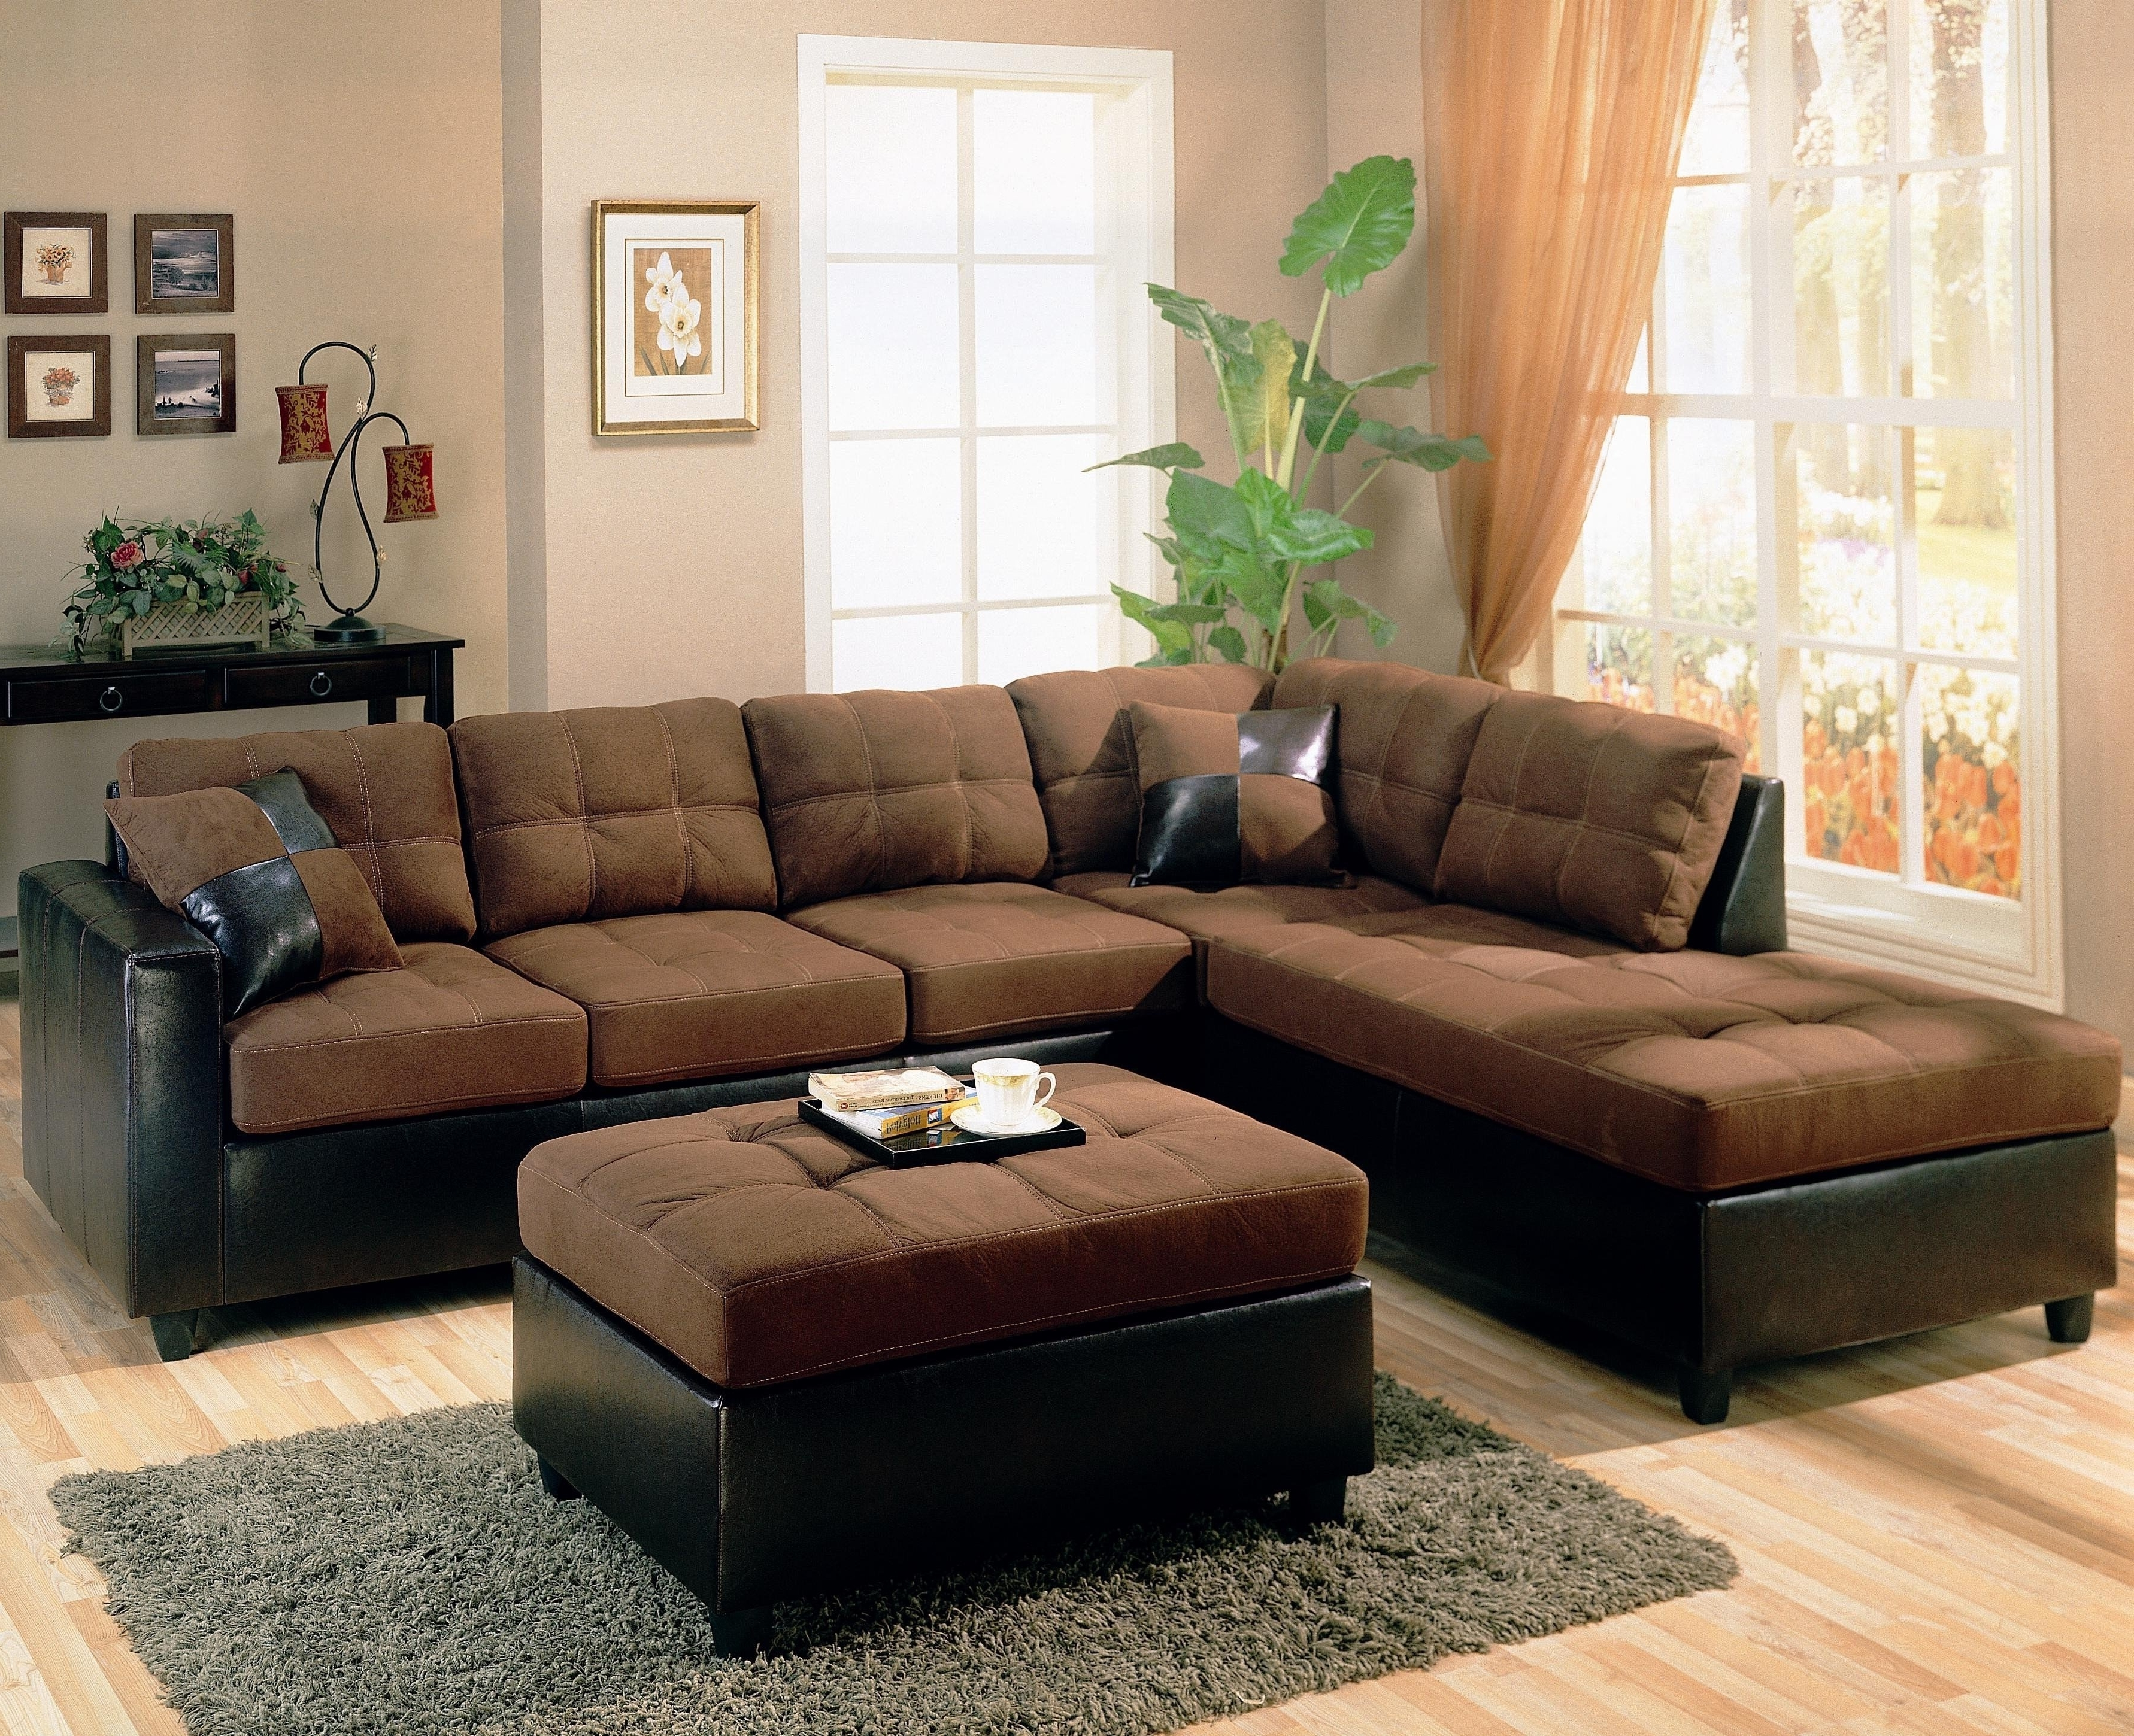 Small Sectional Sofa And Other Styles — The Kienandsweet Furnitures With Well Known Sectional Sofas At Chicago (View 6 of 15)